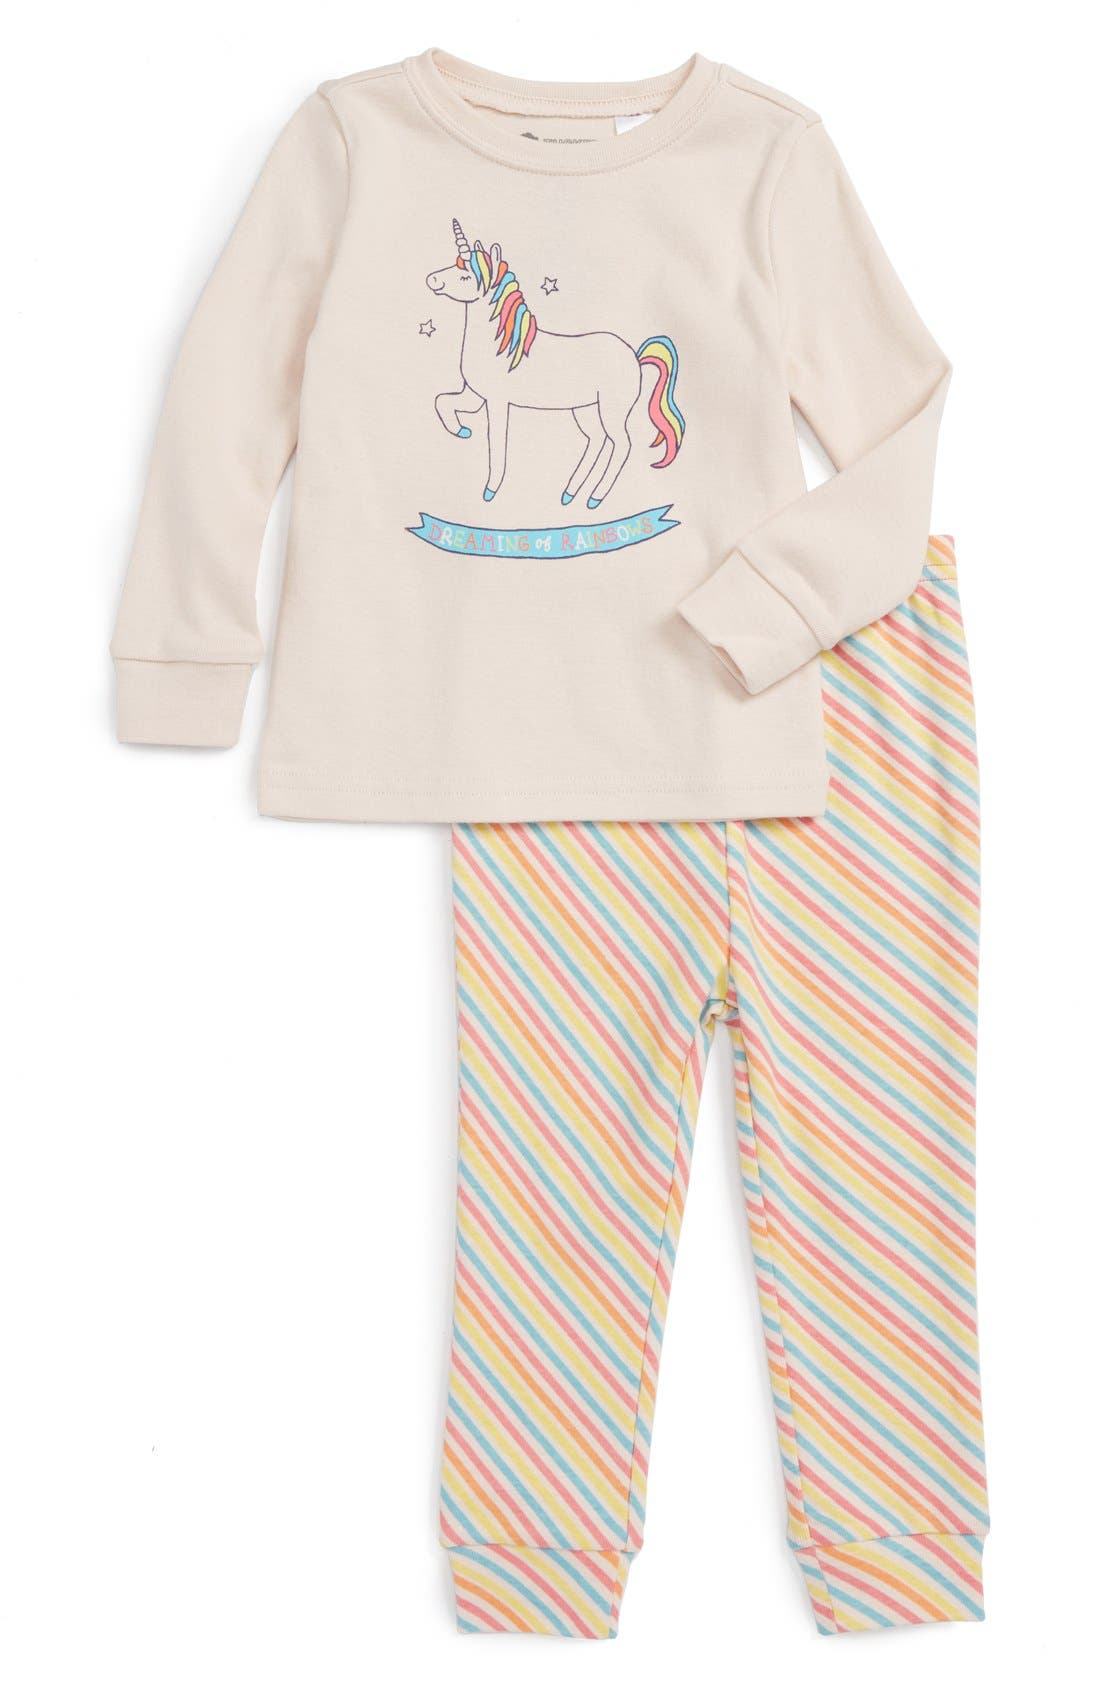 Main Image - Tucker + Tate Fitted Two-Piece Pajamas (Baby Girls)